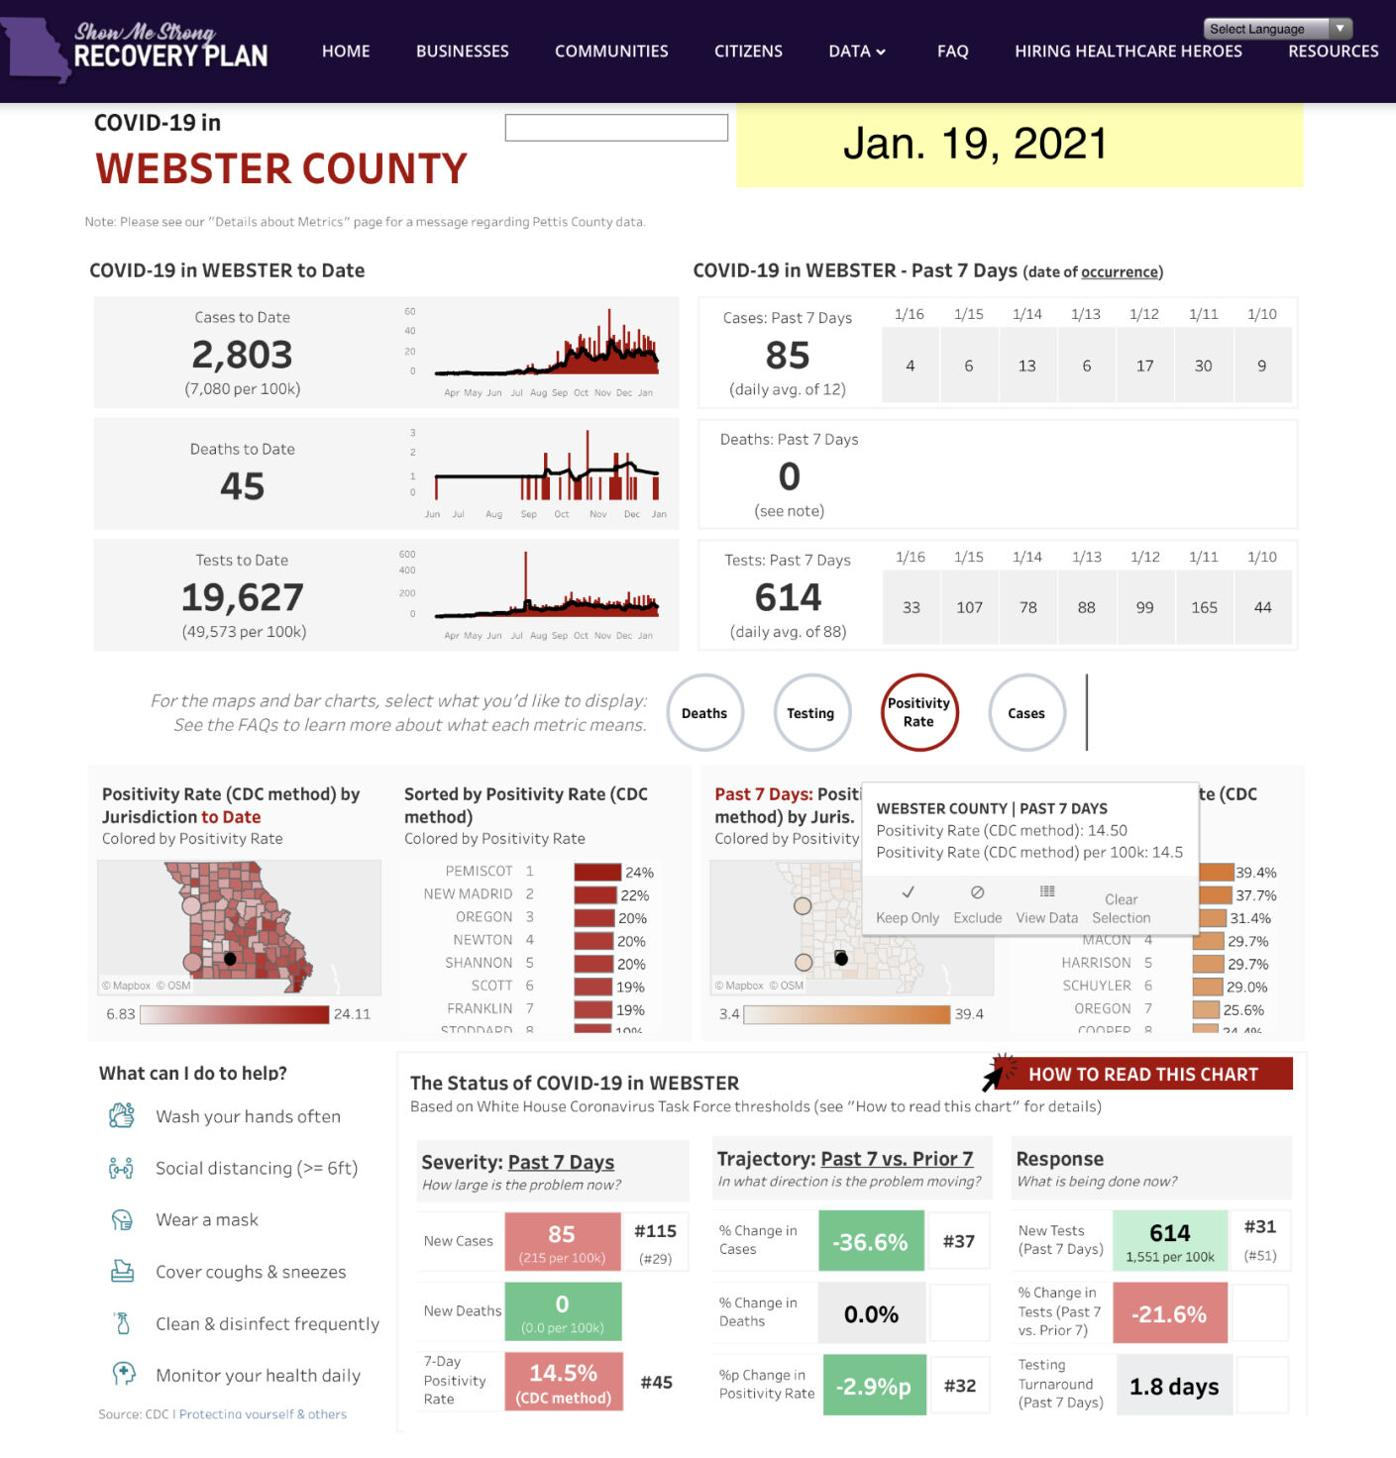 - COVID-19 cases Jan. 19 Web. Co. Mo. State